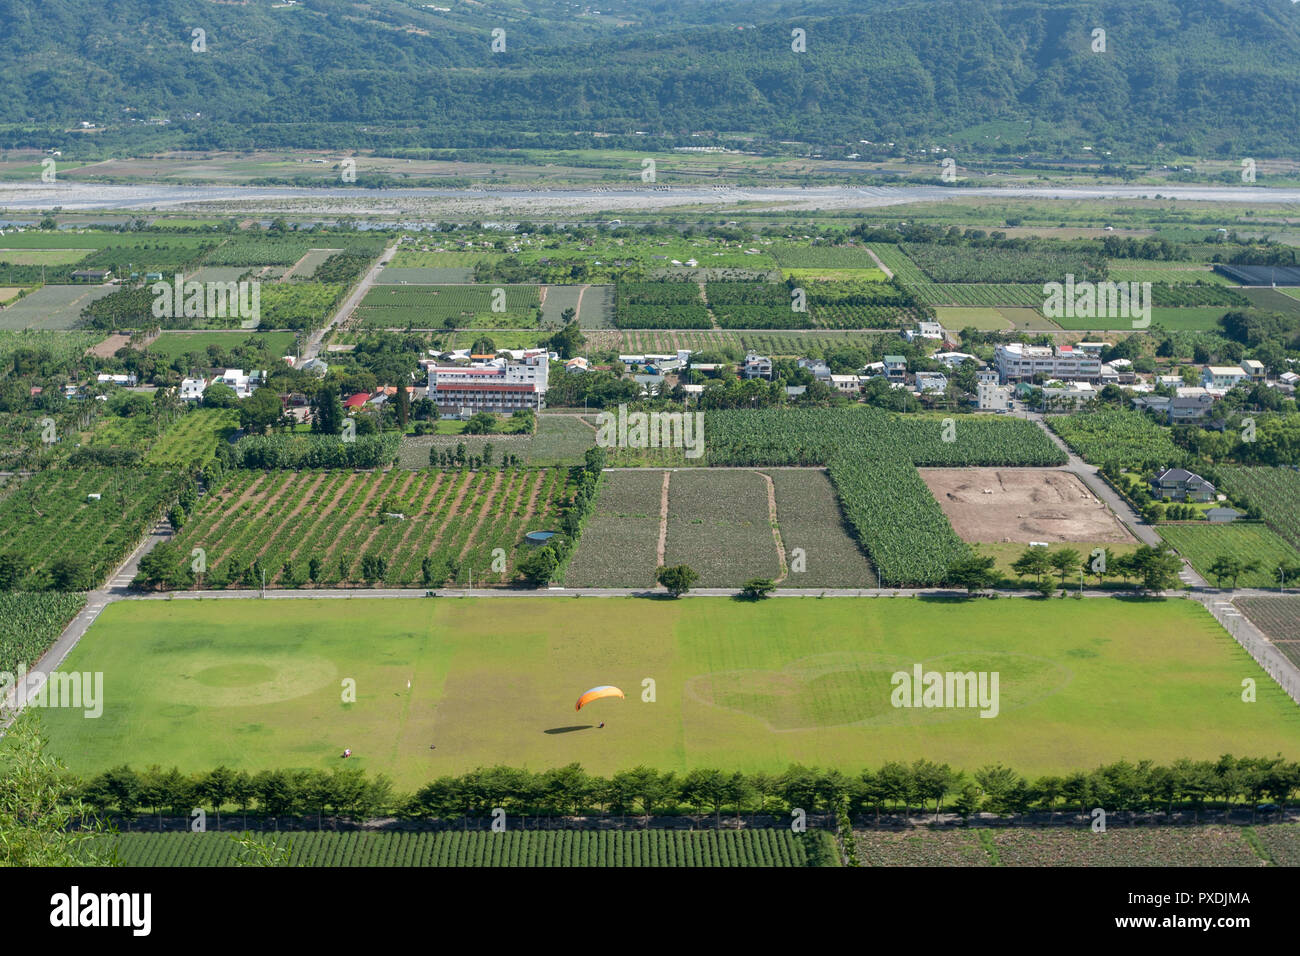 Paraglider landing on field, circle and heart shape on green grass field,countryside aerial view, at Luye Township, Taitung County, Taiwan Stock Photo